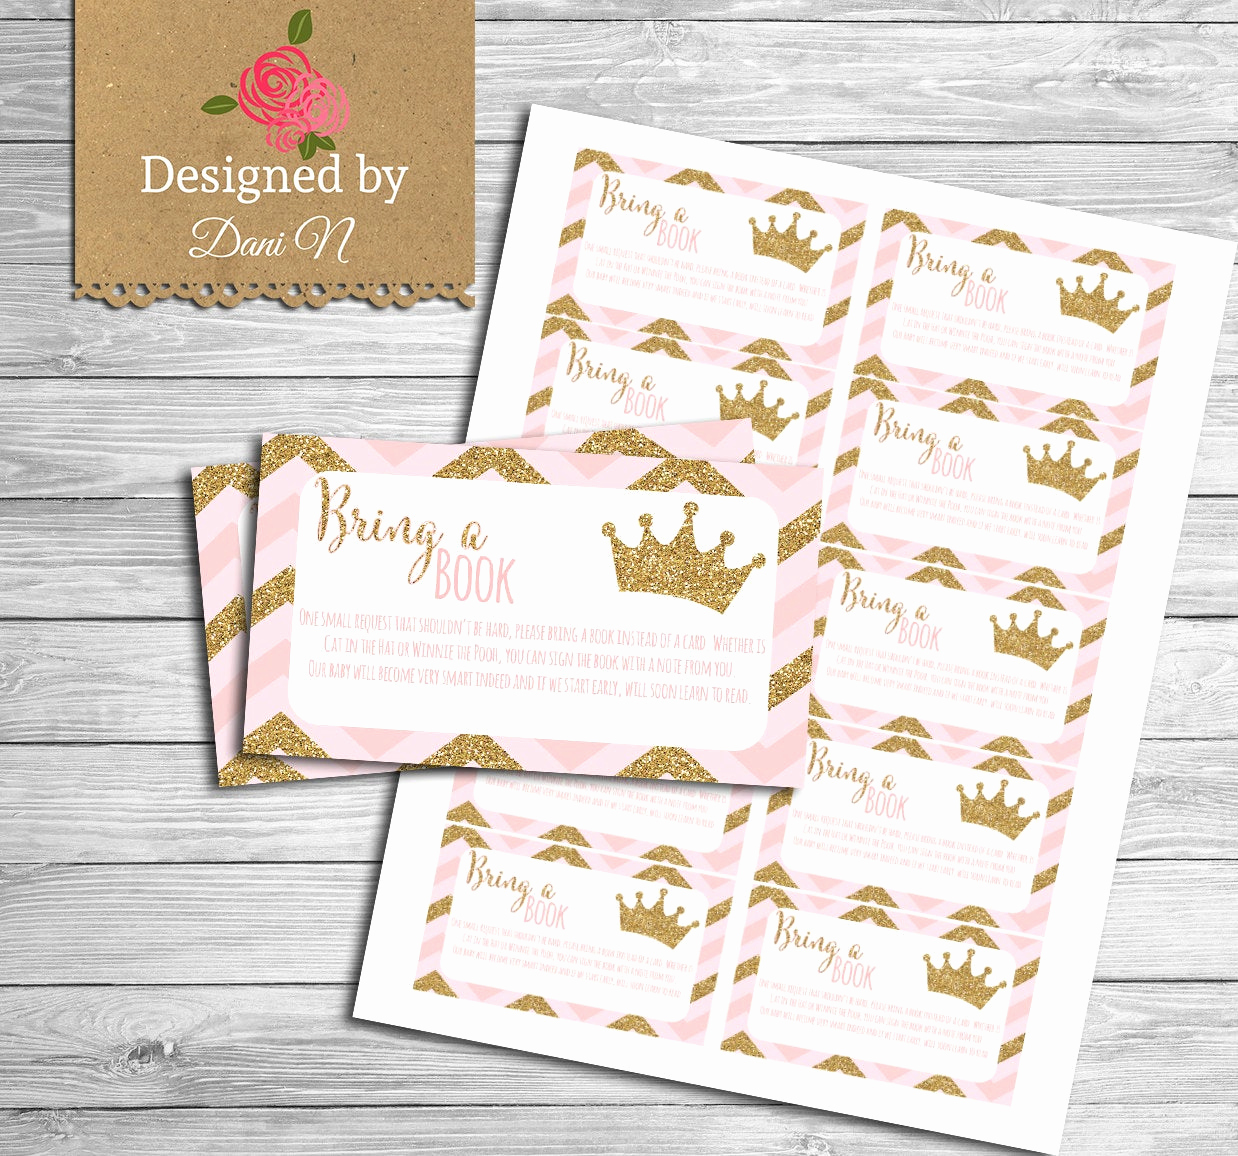 Baby Shower Invitation Inserts Best Of Bring A Book Baby Shower Insert Princess Baby Shower Pink